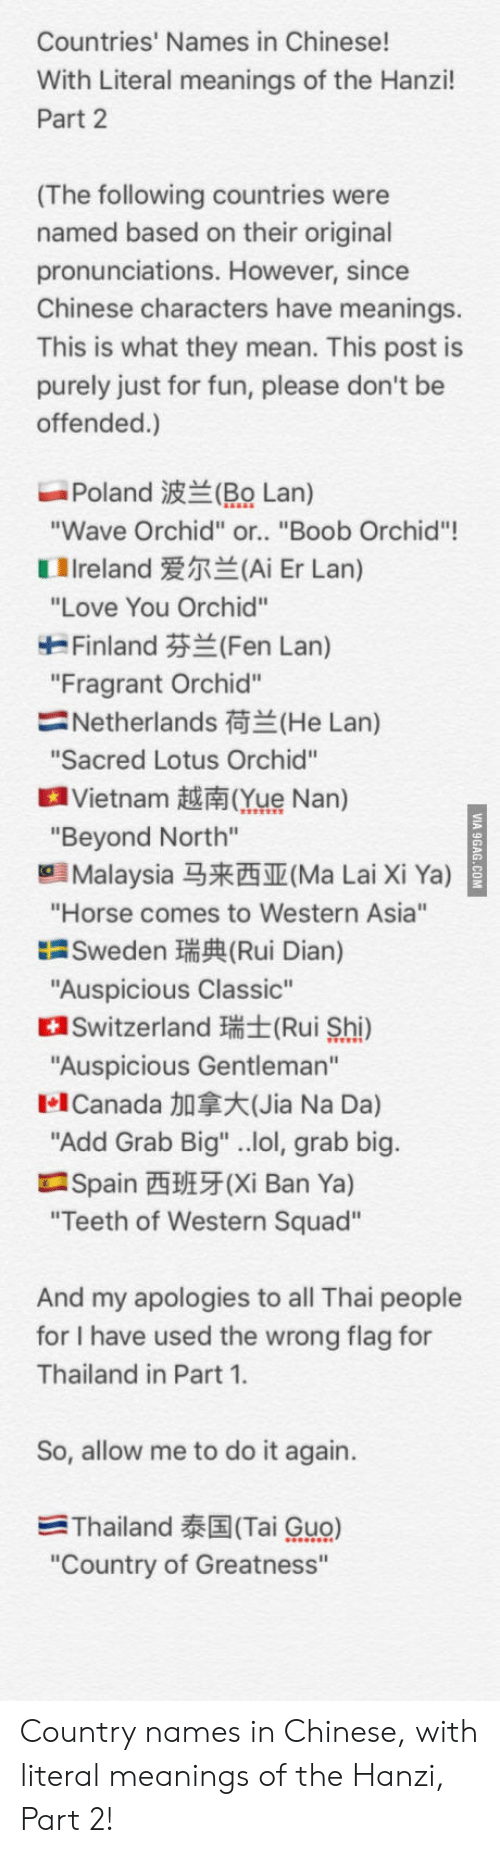 """jia: Countries' Names in Chinese!  With Literal meanings of the Hanzi!  Part 2  (The following countries were  named based on their original  pronunciations. However, since  Chinese characters have meanings.  This is what they mean. This post is  purely just for fun, please don't be  offended.)  Poland波兰(RO Lan)  Wave Orchid"""" or.. """"Boob Orchid""""!  1 Ireland爱尔兰(Ai Er Lan)  """"Love You Orchid""""  Finland芬兰(Fen Lan)  """"Fragrant Orchid""""  Netherlands荷兰(He Lan)  Sacred Lotus Orchid""""  a Vietnam越南Que Nan)  """"Beyond North""""  Malaysia马来西亚(Ma Lai Xi Ya)  """"Horse comes to Western Asia""""  Sweden瑞興Rui Dian)  """"Auspicious Classic""""  Switzerland (Rui Shi)  Auspicious Gentleman""""  1.1 Canada加拿大(Jia Na Da)  Add Grab Big"""" ..lol, grab big  Spain西班牙(Xi Ban Ya)  Teeth of Western Squad""""  And my apologies to all Thai people  for I have used the wrong flag for  Thailand in Part 1  So, allow me to do it again.  -Thailand泰国(Tai Guo)  """"Country of Greatness"""" Country names in Chinese, with literal meanings of the Hanzi, Part 2!"""